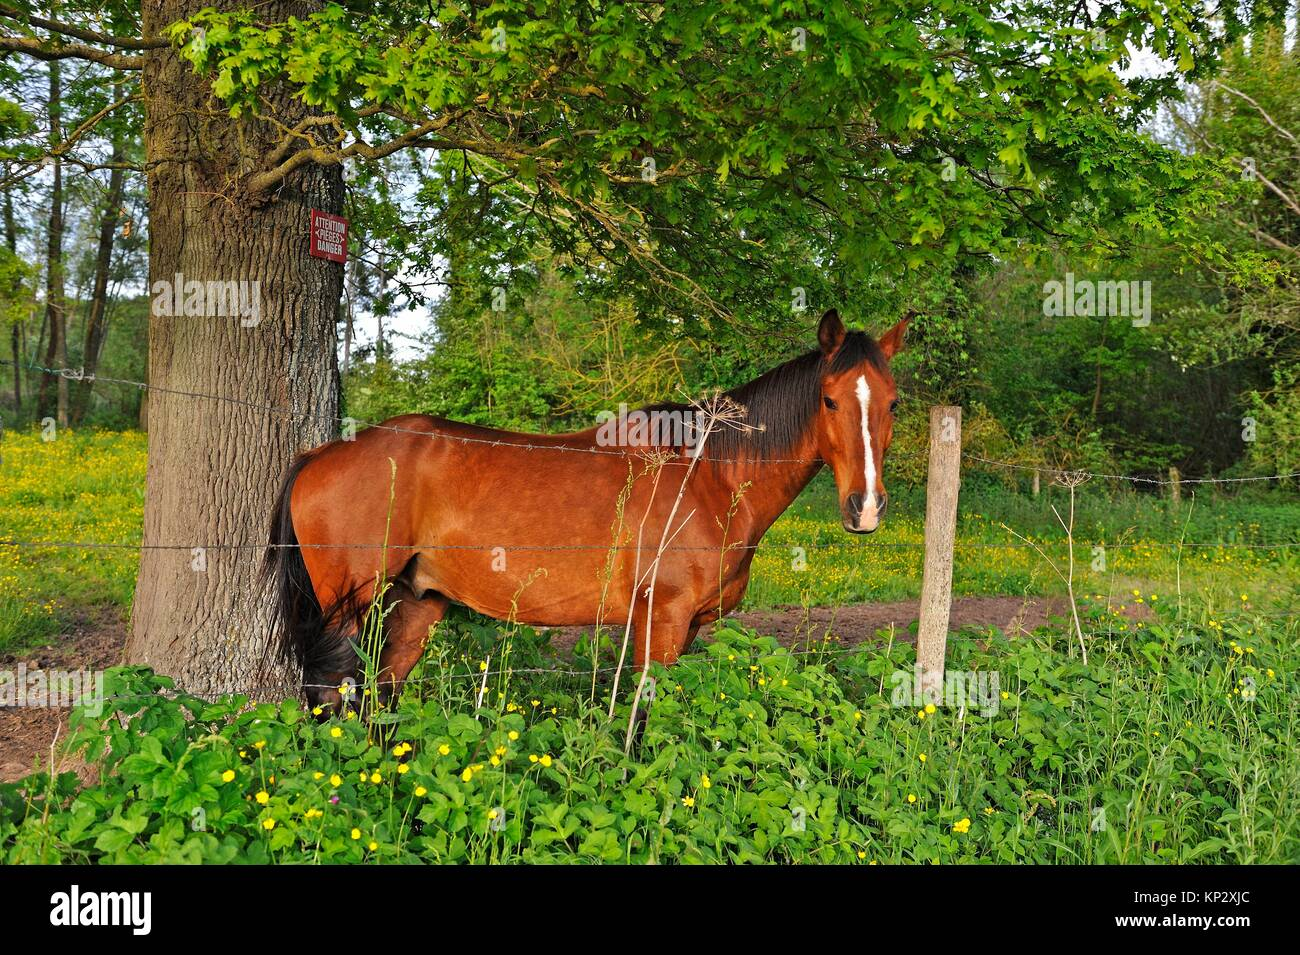 bay horse under an oak tree, Eure-et-Loir department, Centre-Val de Loire region, France, Europe. - Stock Image